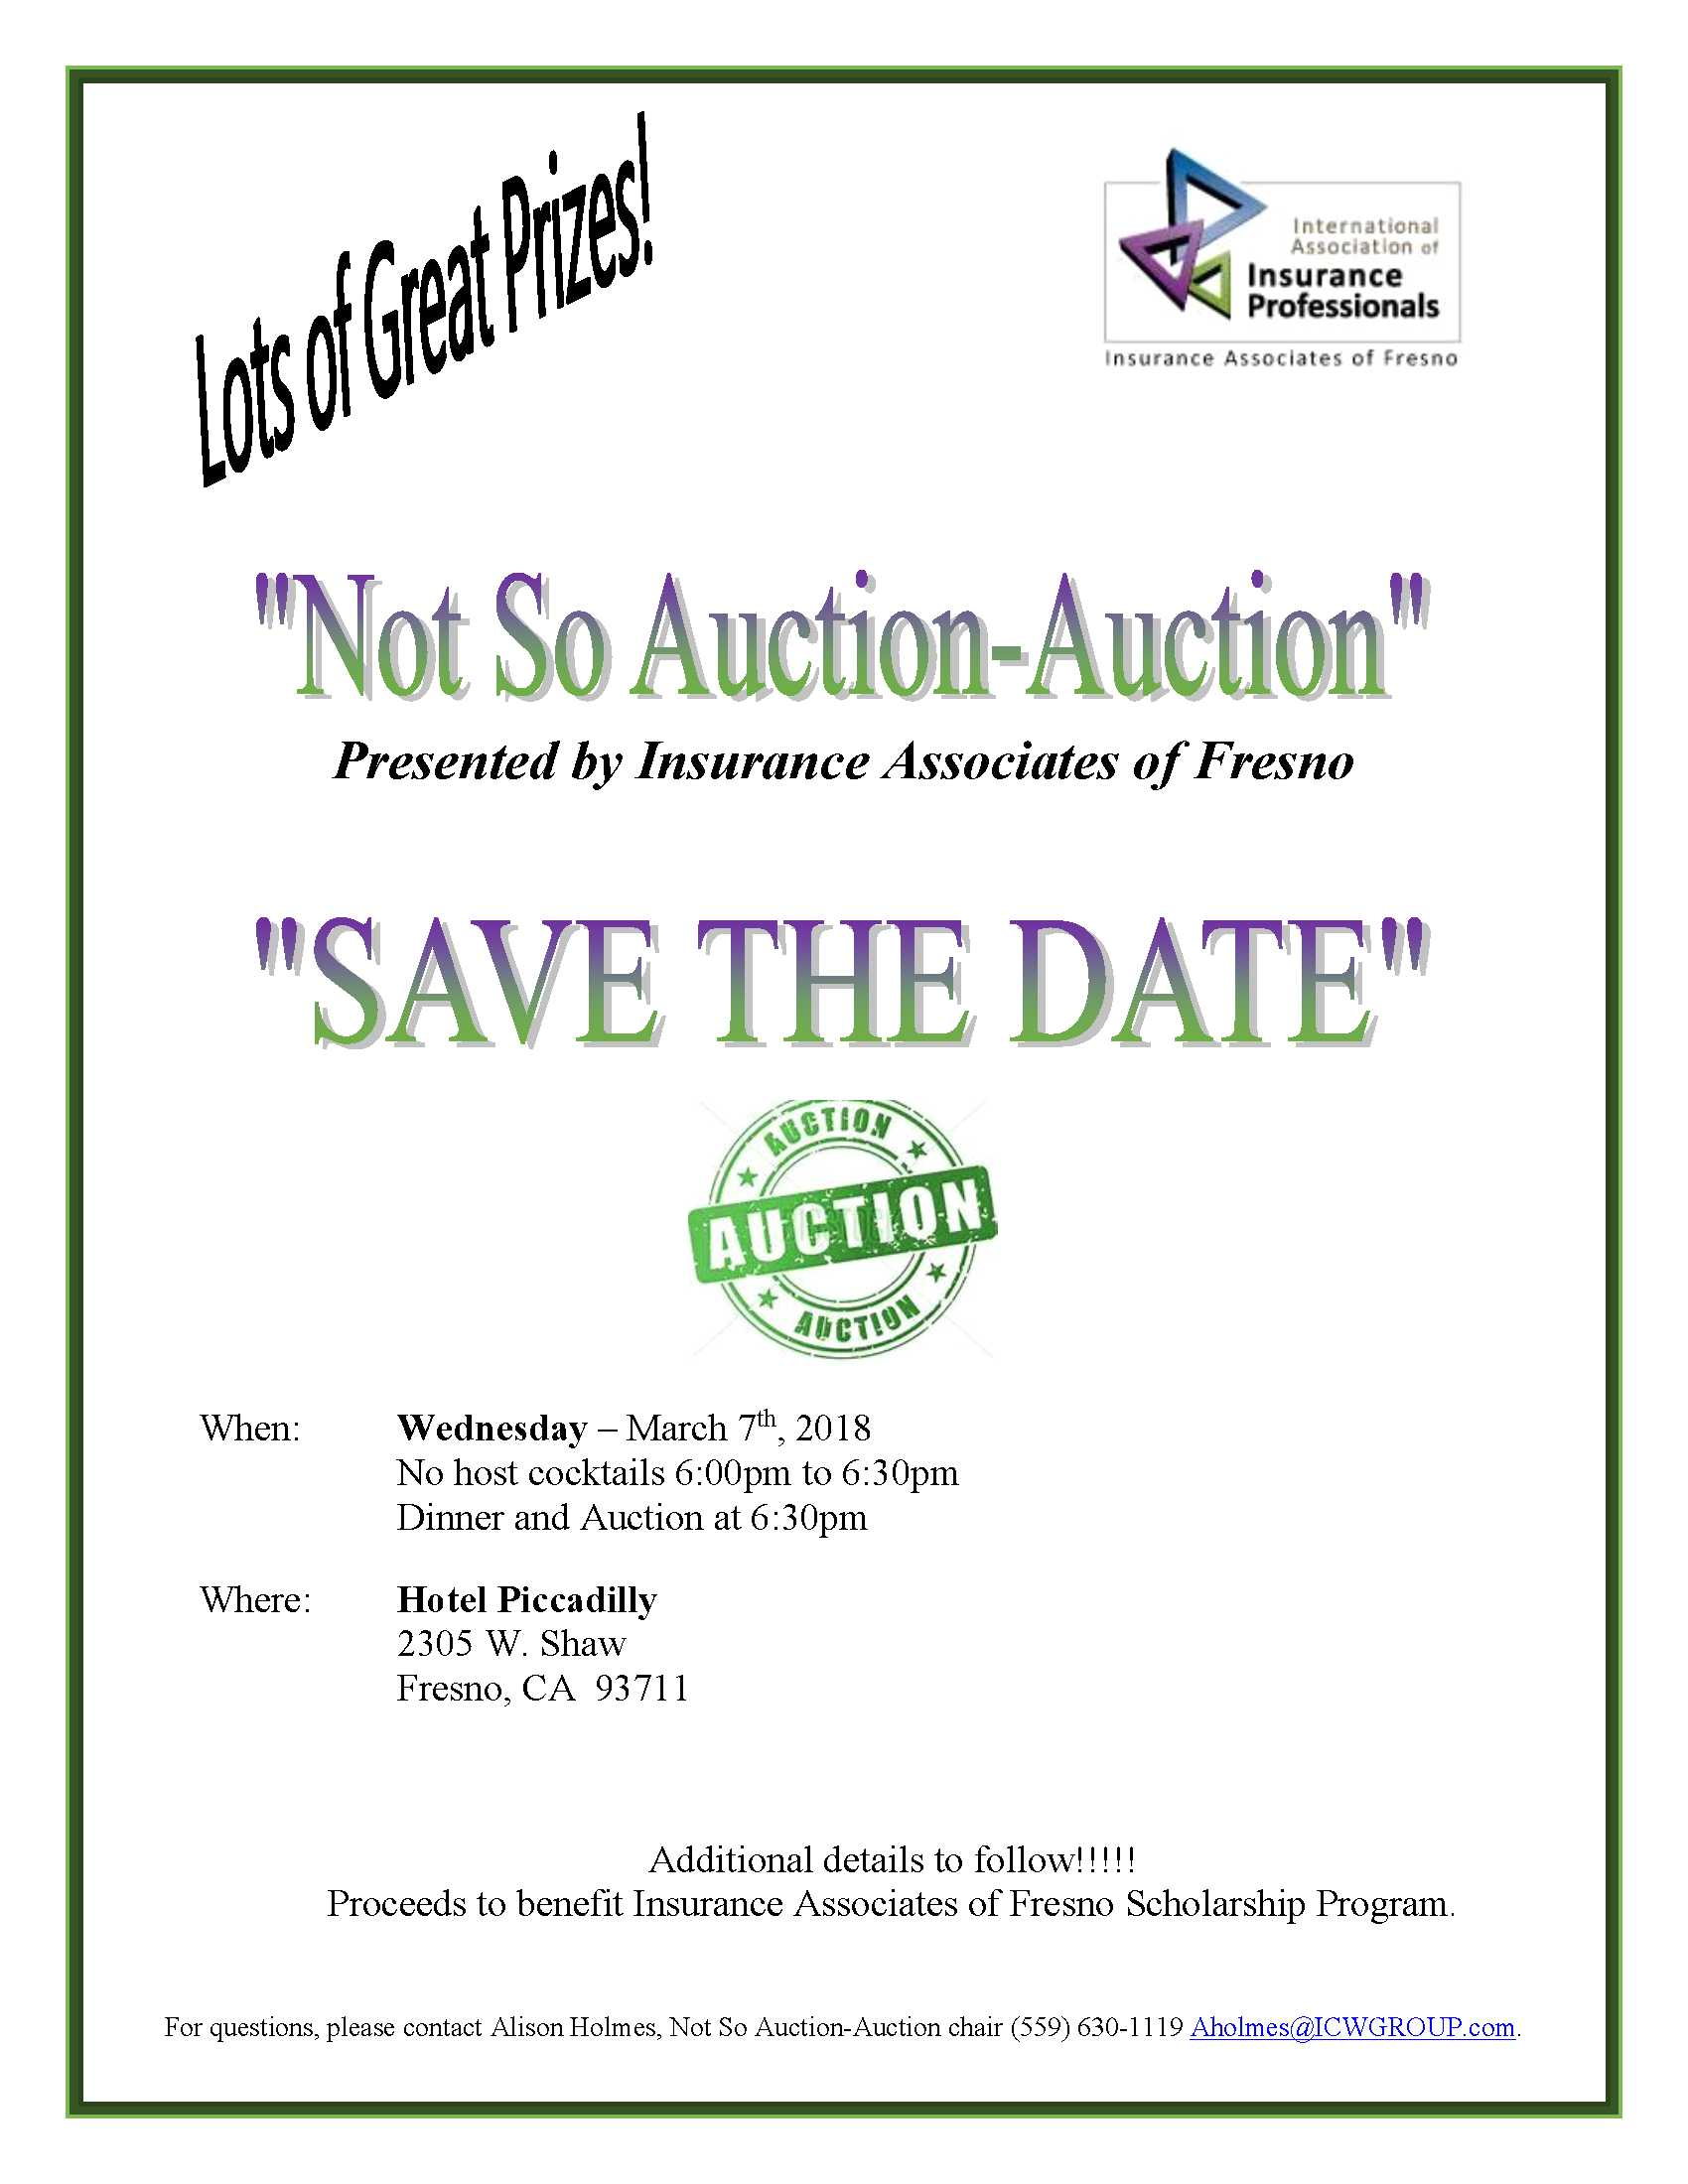 2018-03-07 IAOF - Not so Auction STD 2018.jpg